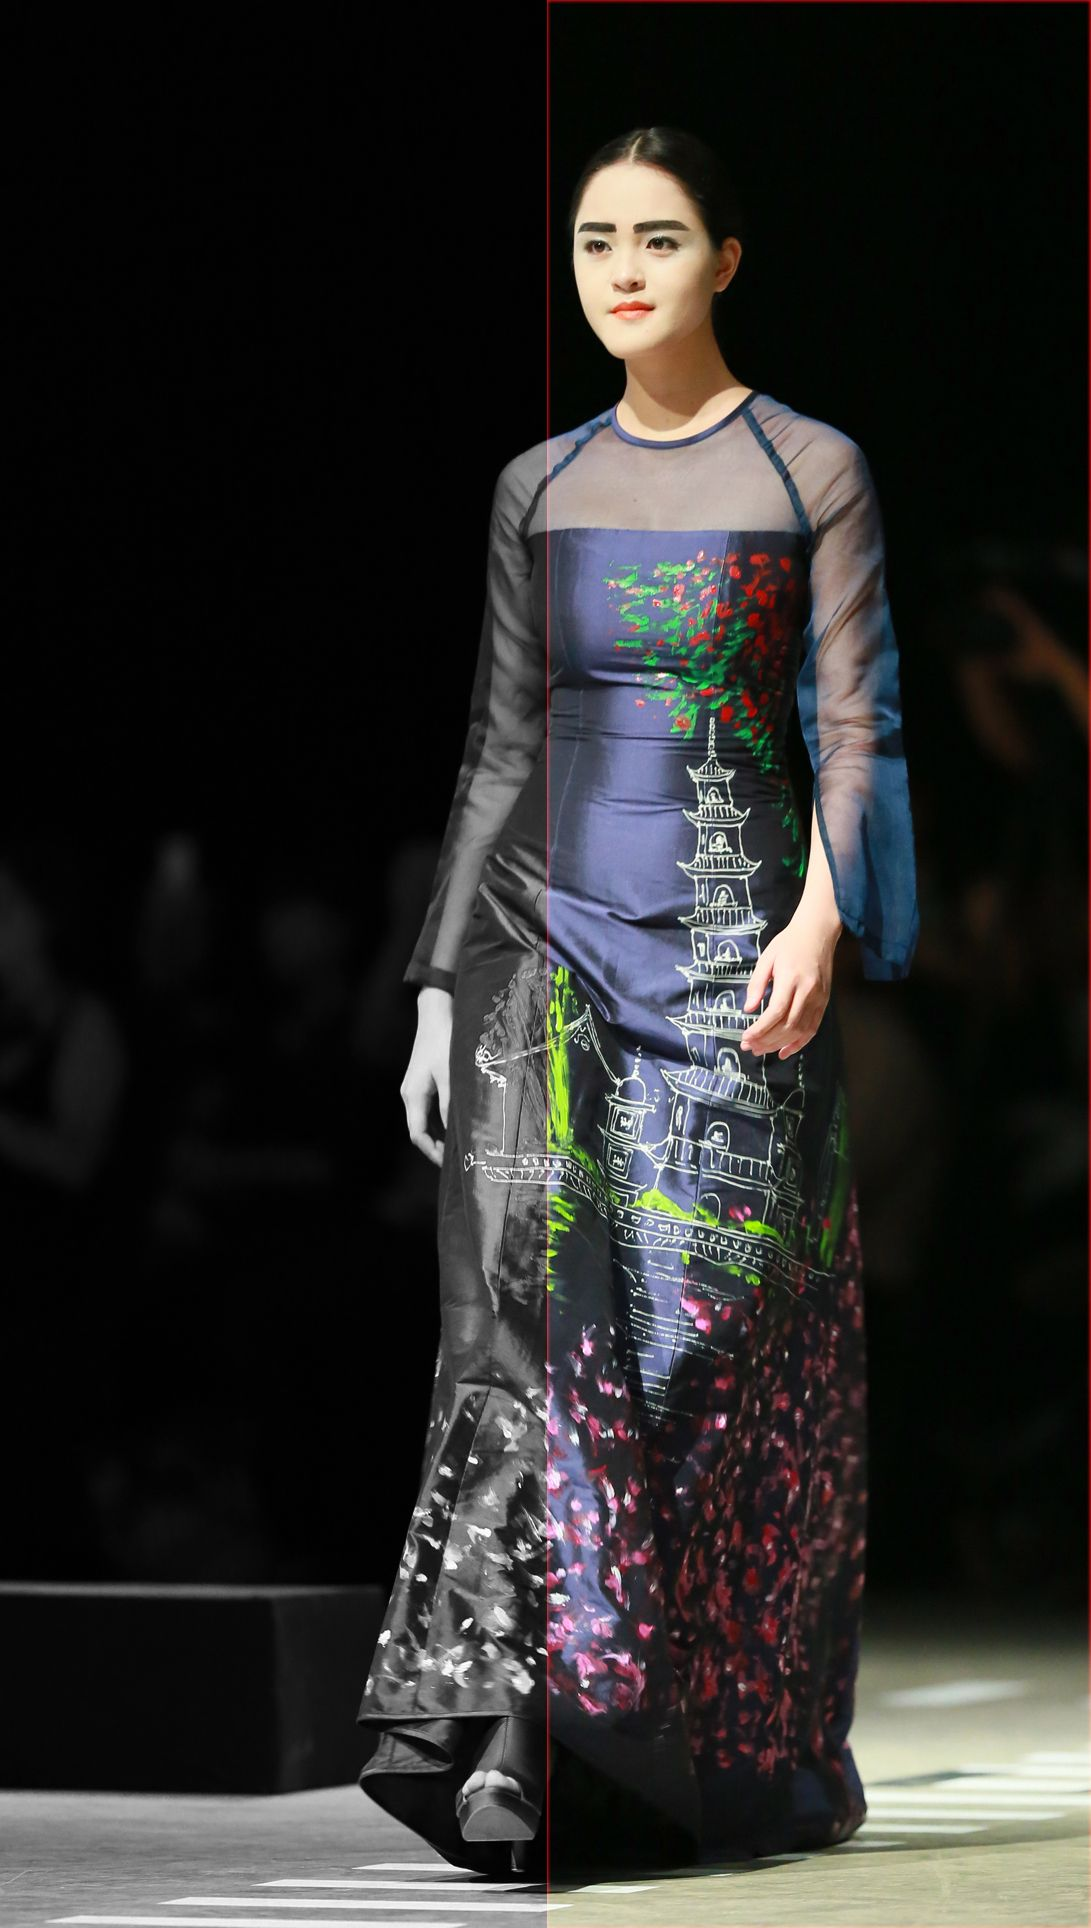 Vietnam Fashion Week FW14 - Haute Couture. Designer: Chula. Photo: Thanh Dat